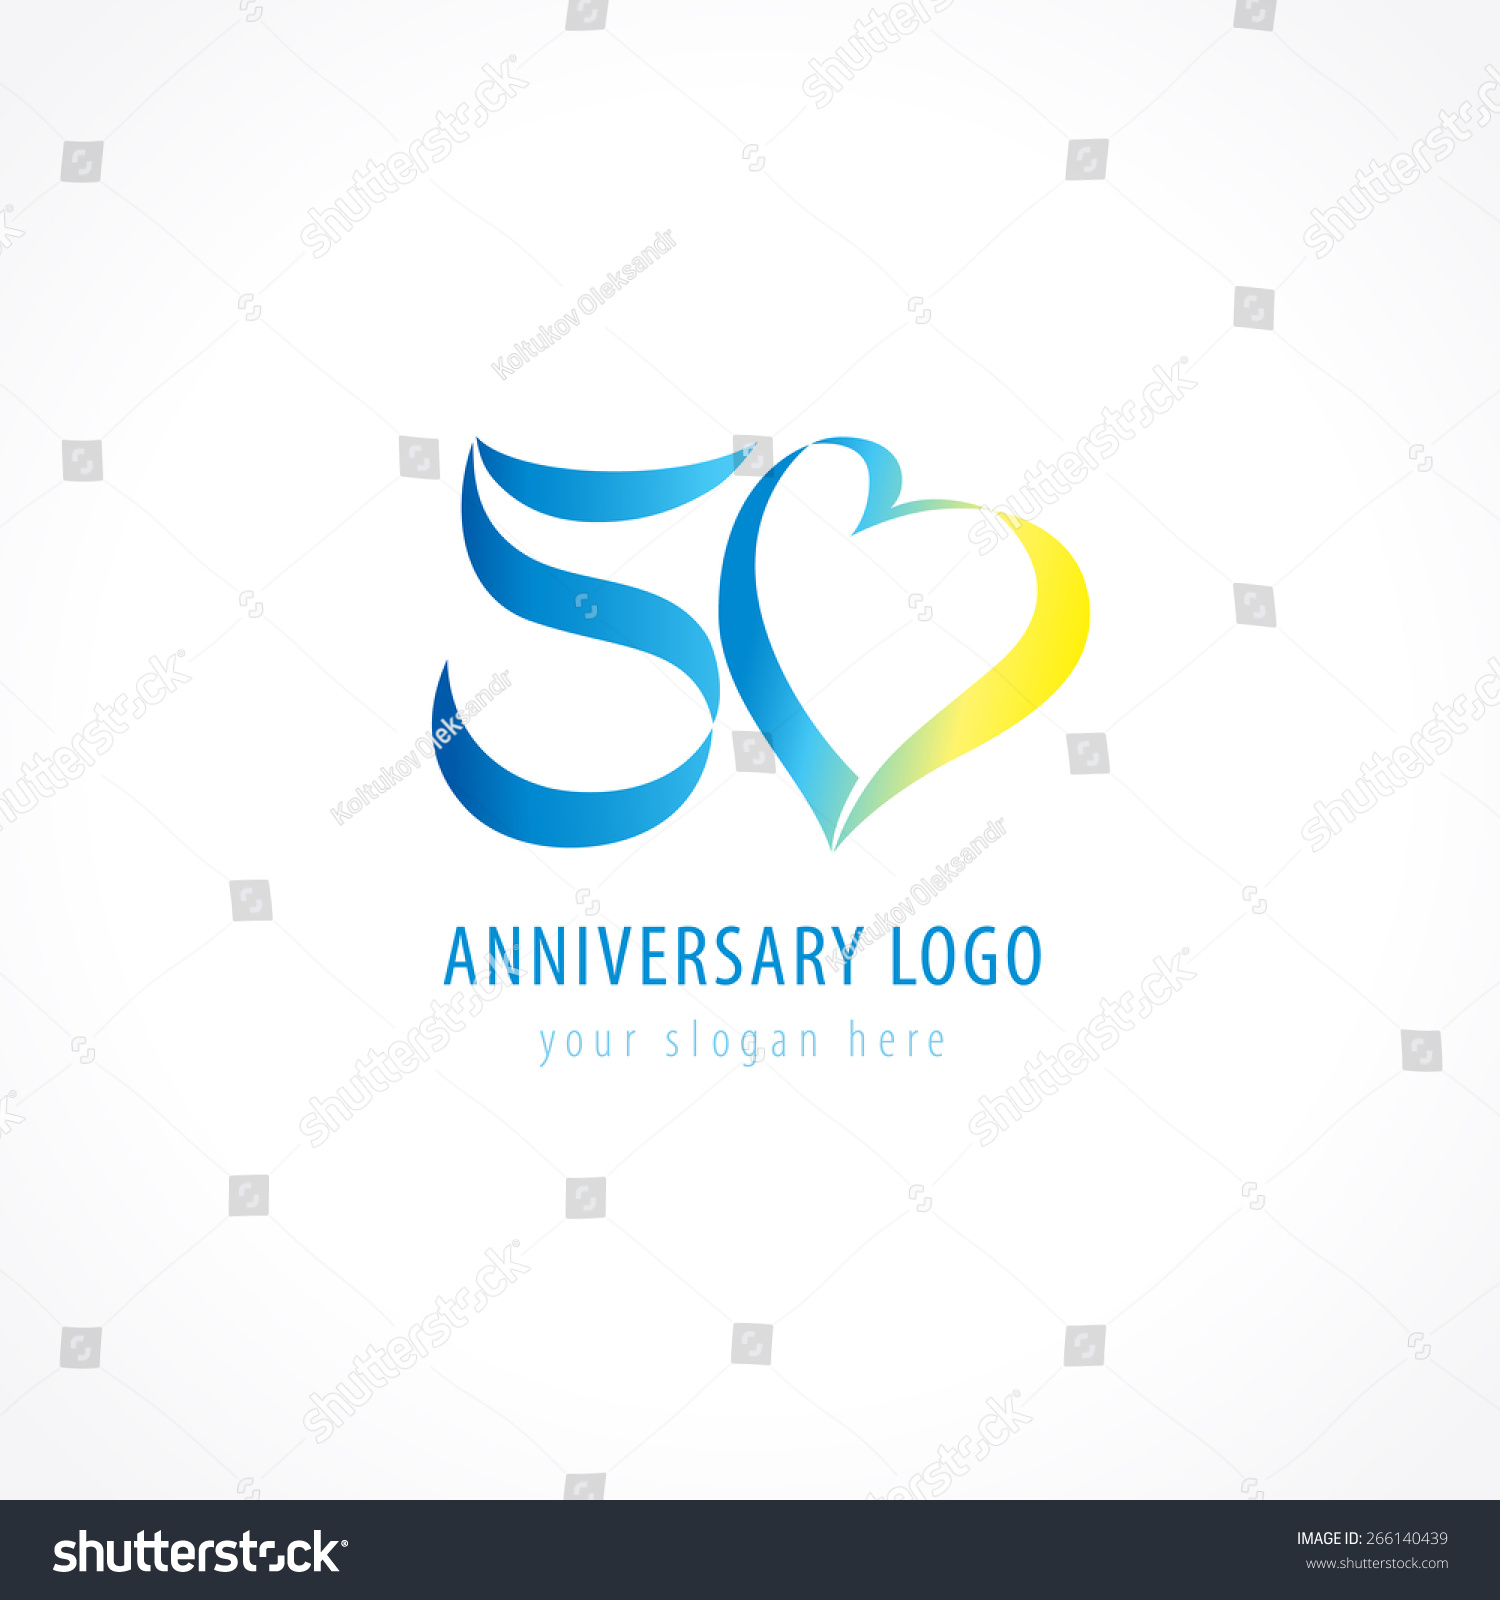 Anniversary logo template images best